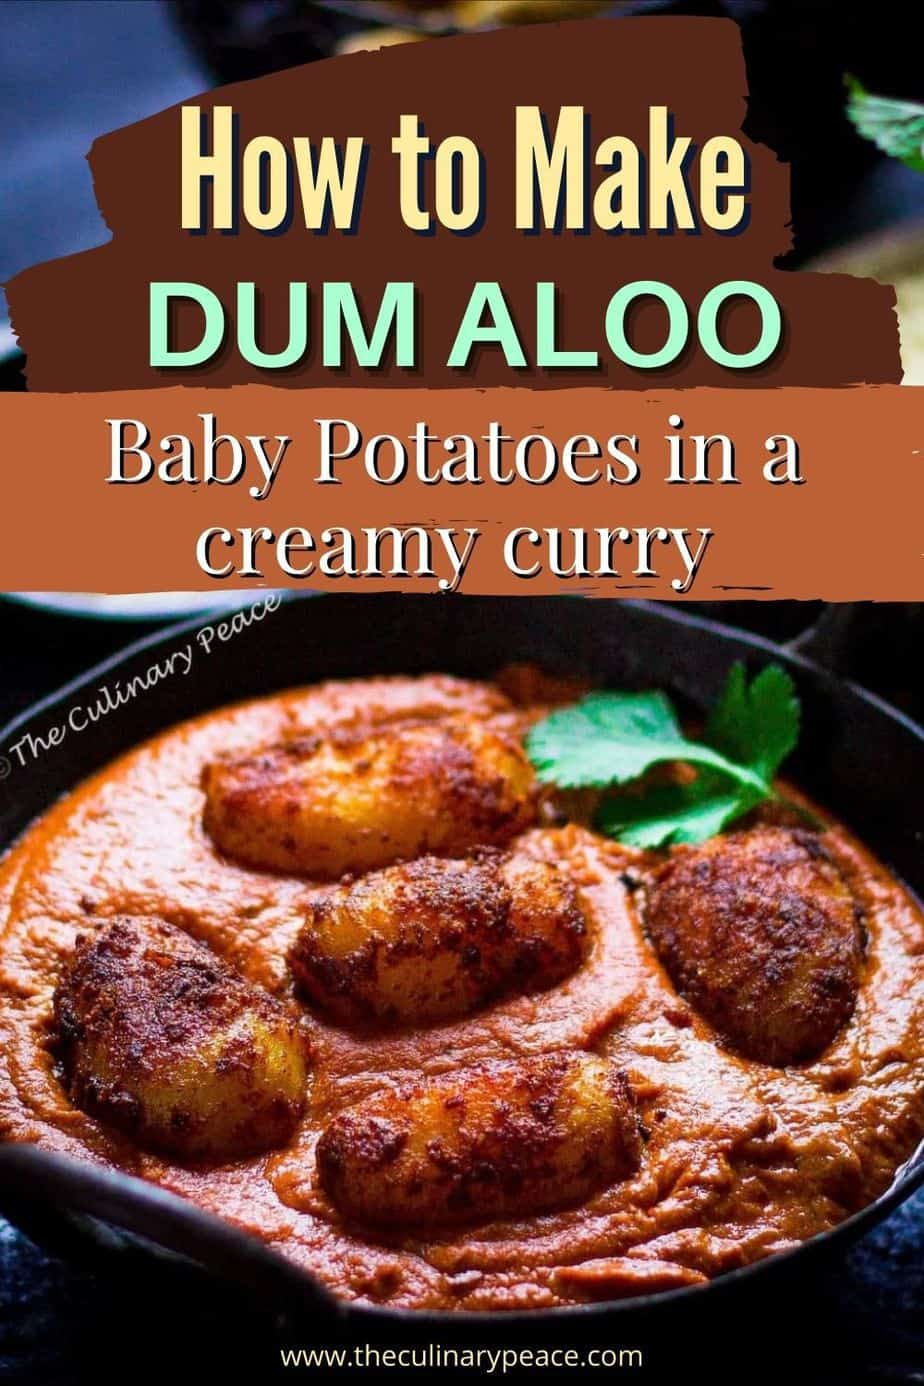 Dum aloo - baby potatoes in a creamy curry looking super delicious